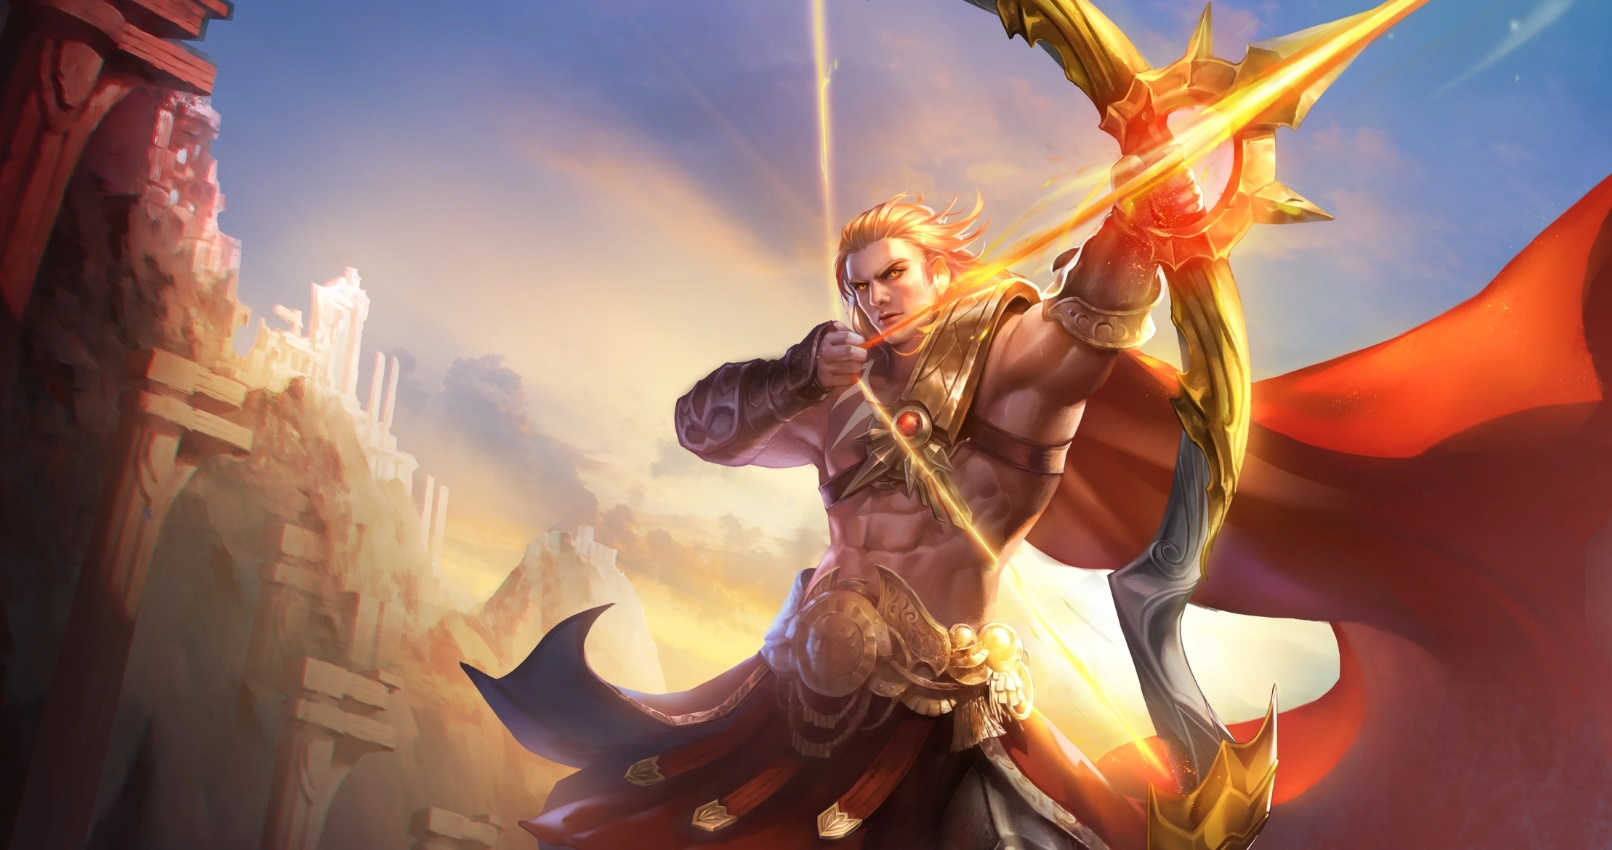 Chinese Video Game Giant Tencent Reportedly Gives Up On Arena Of